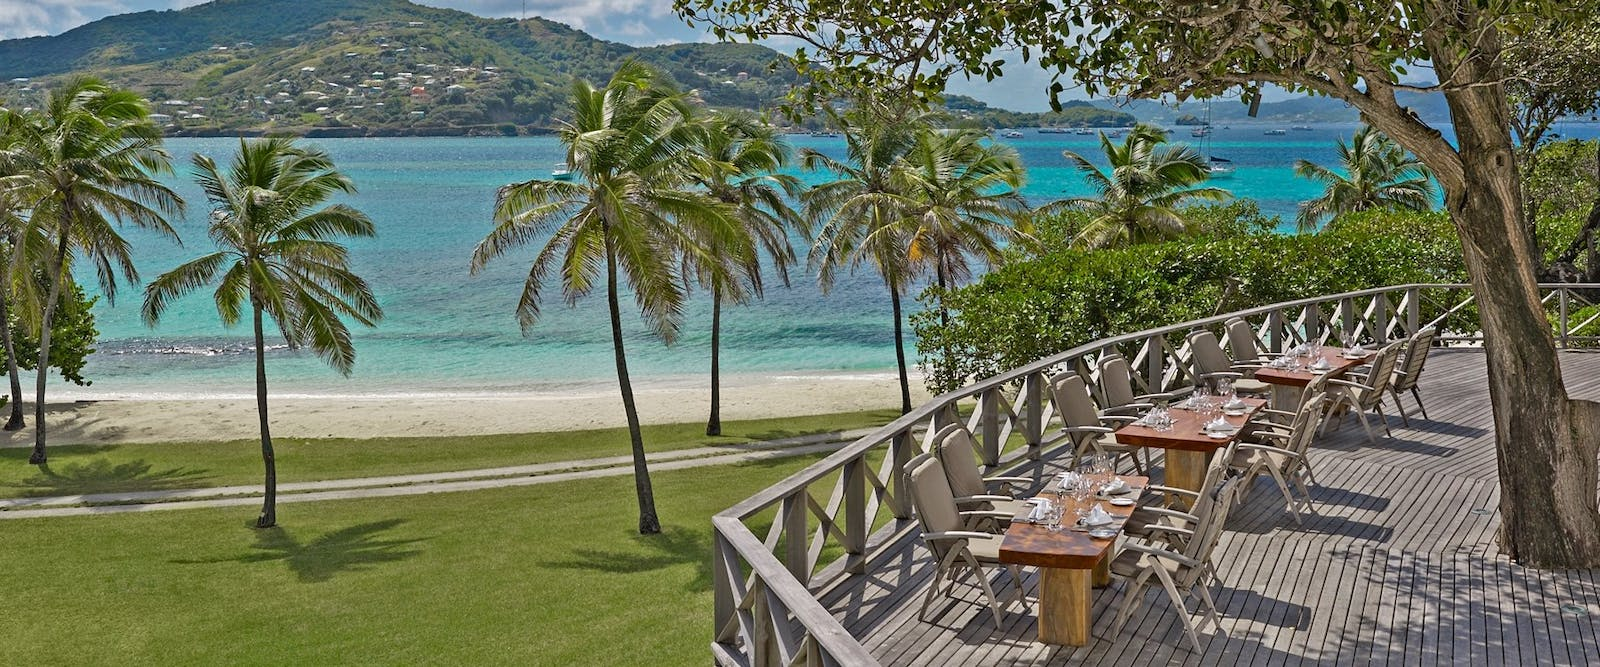 Al fresco dining at Petit St. Vincent